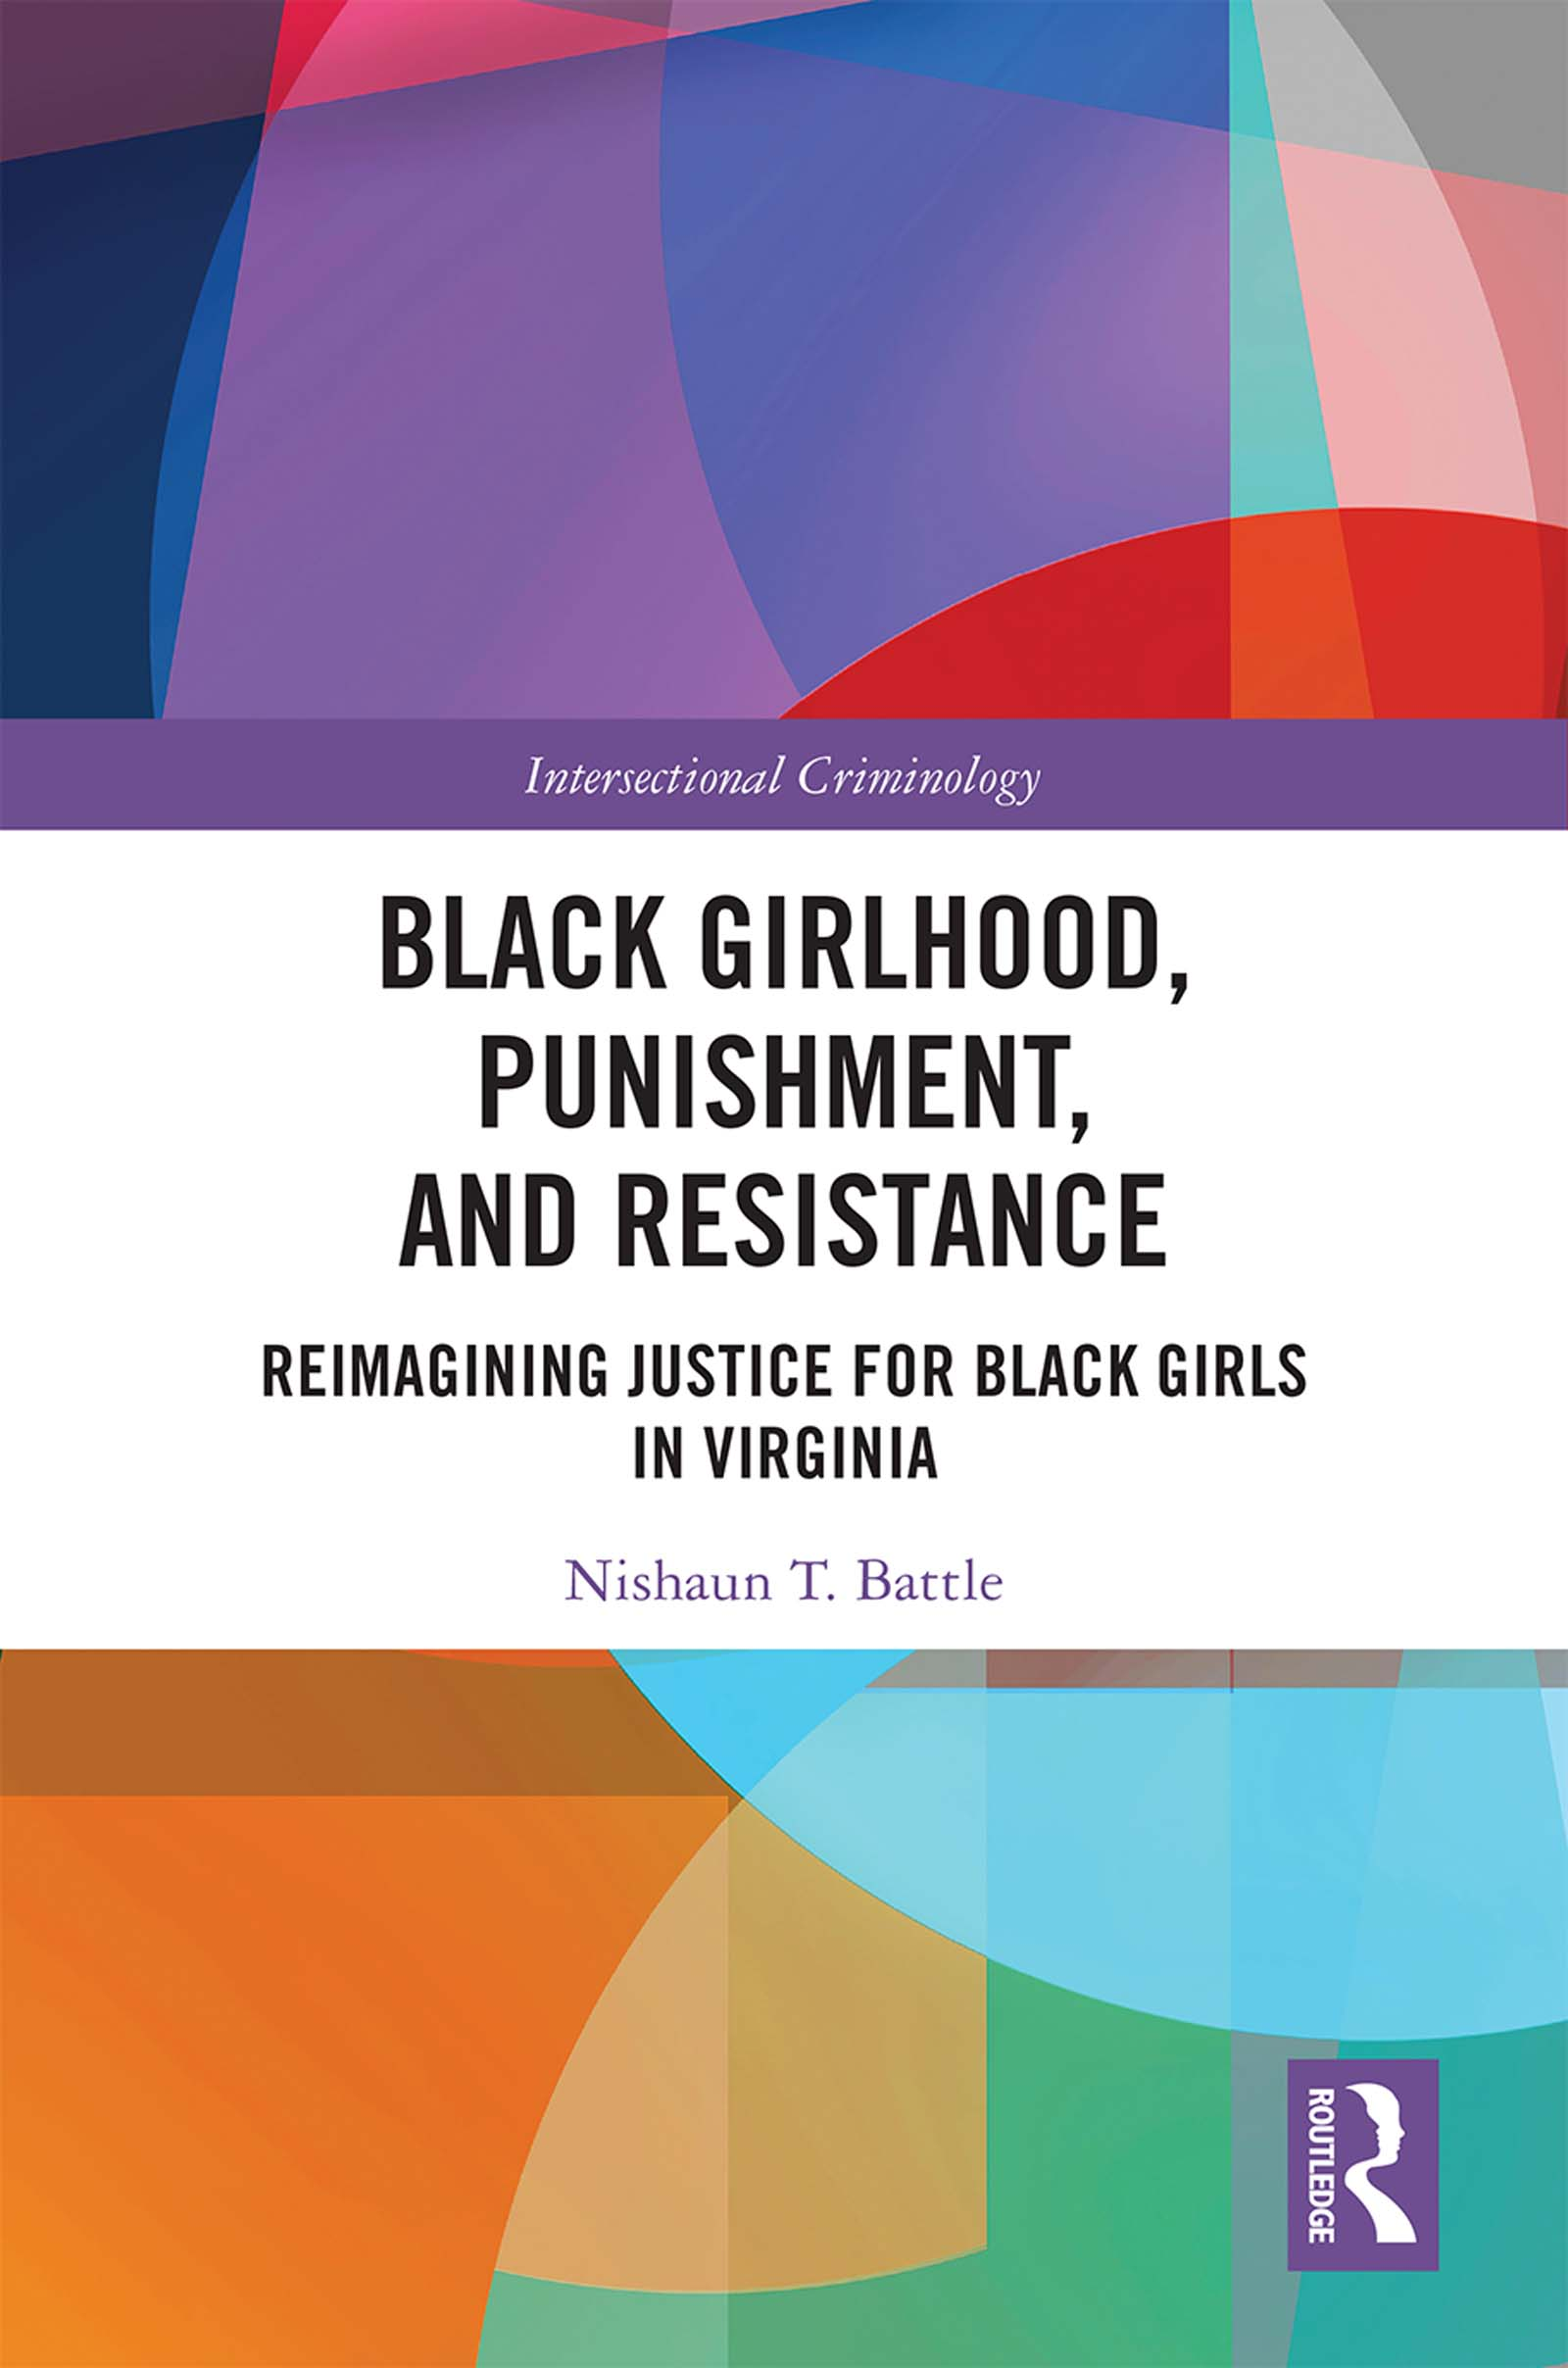 Black Girlhood, Punishment, and Resistance: Reimagining Justice for Black Girls in Virginia book cover